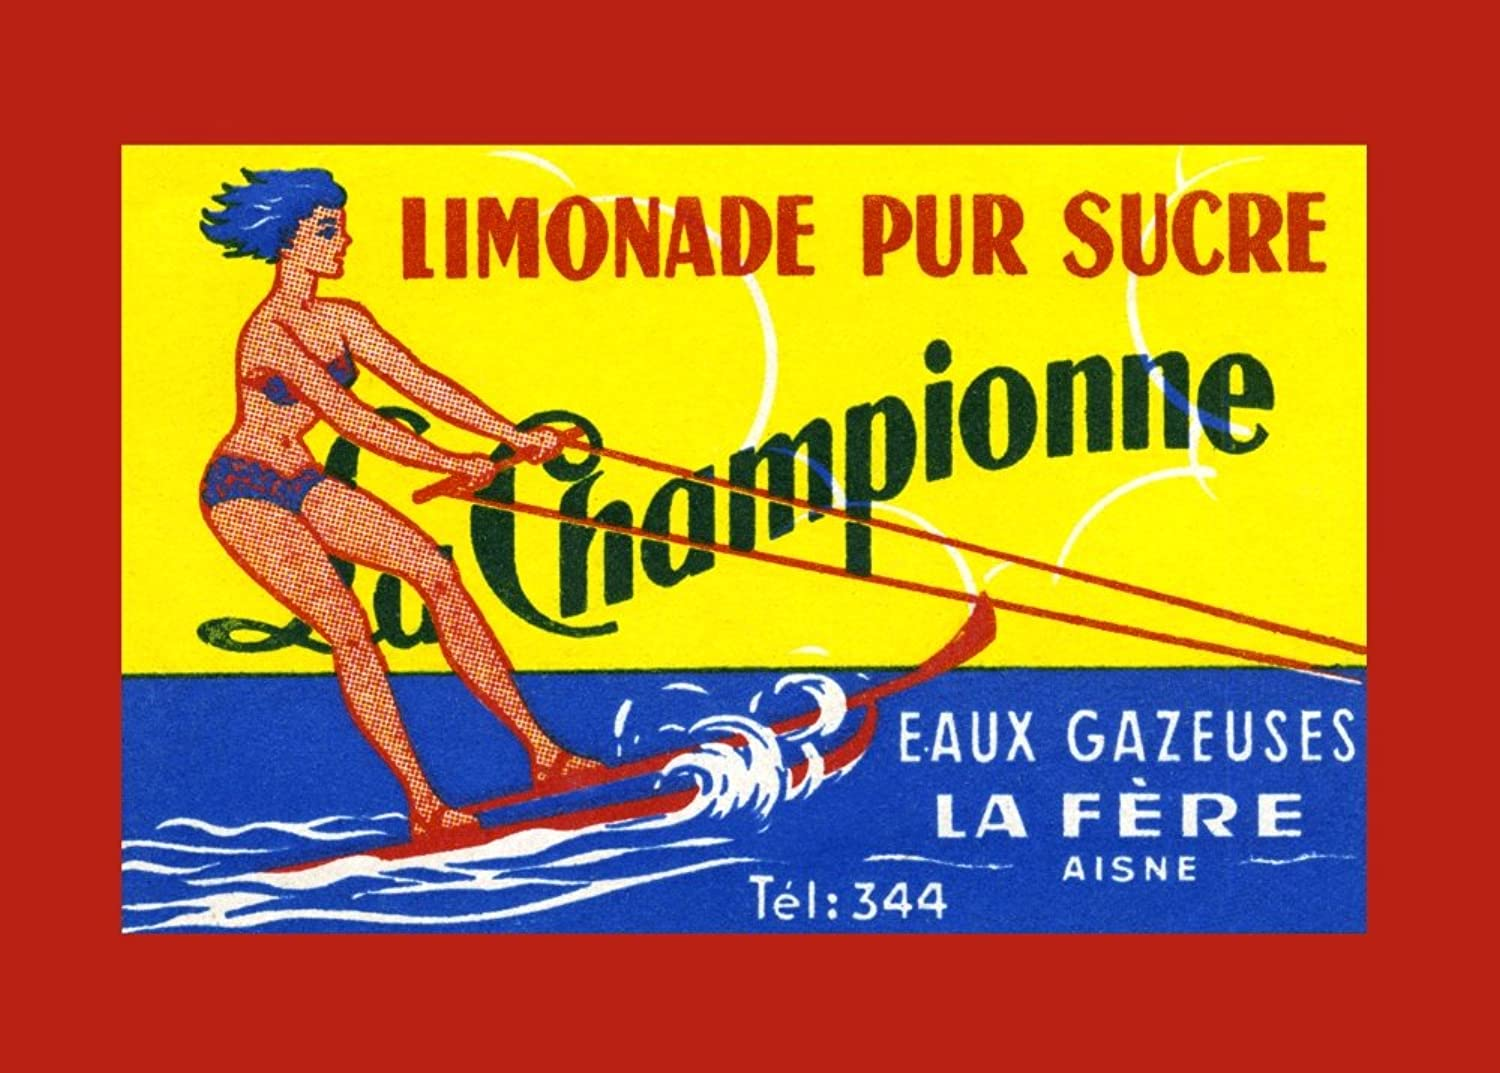 La Championne - Limonade pur Sucre The champion lemonade drink from France The bottle label shows a woman in a bikini water skiing Poster Print by unknown (24 x 36)